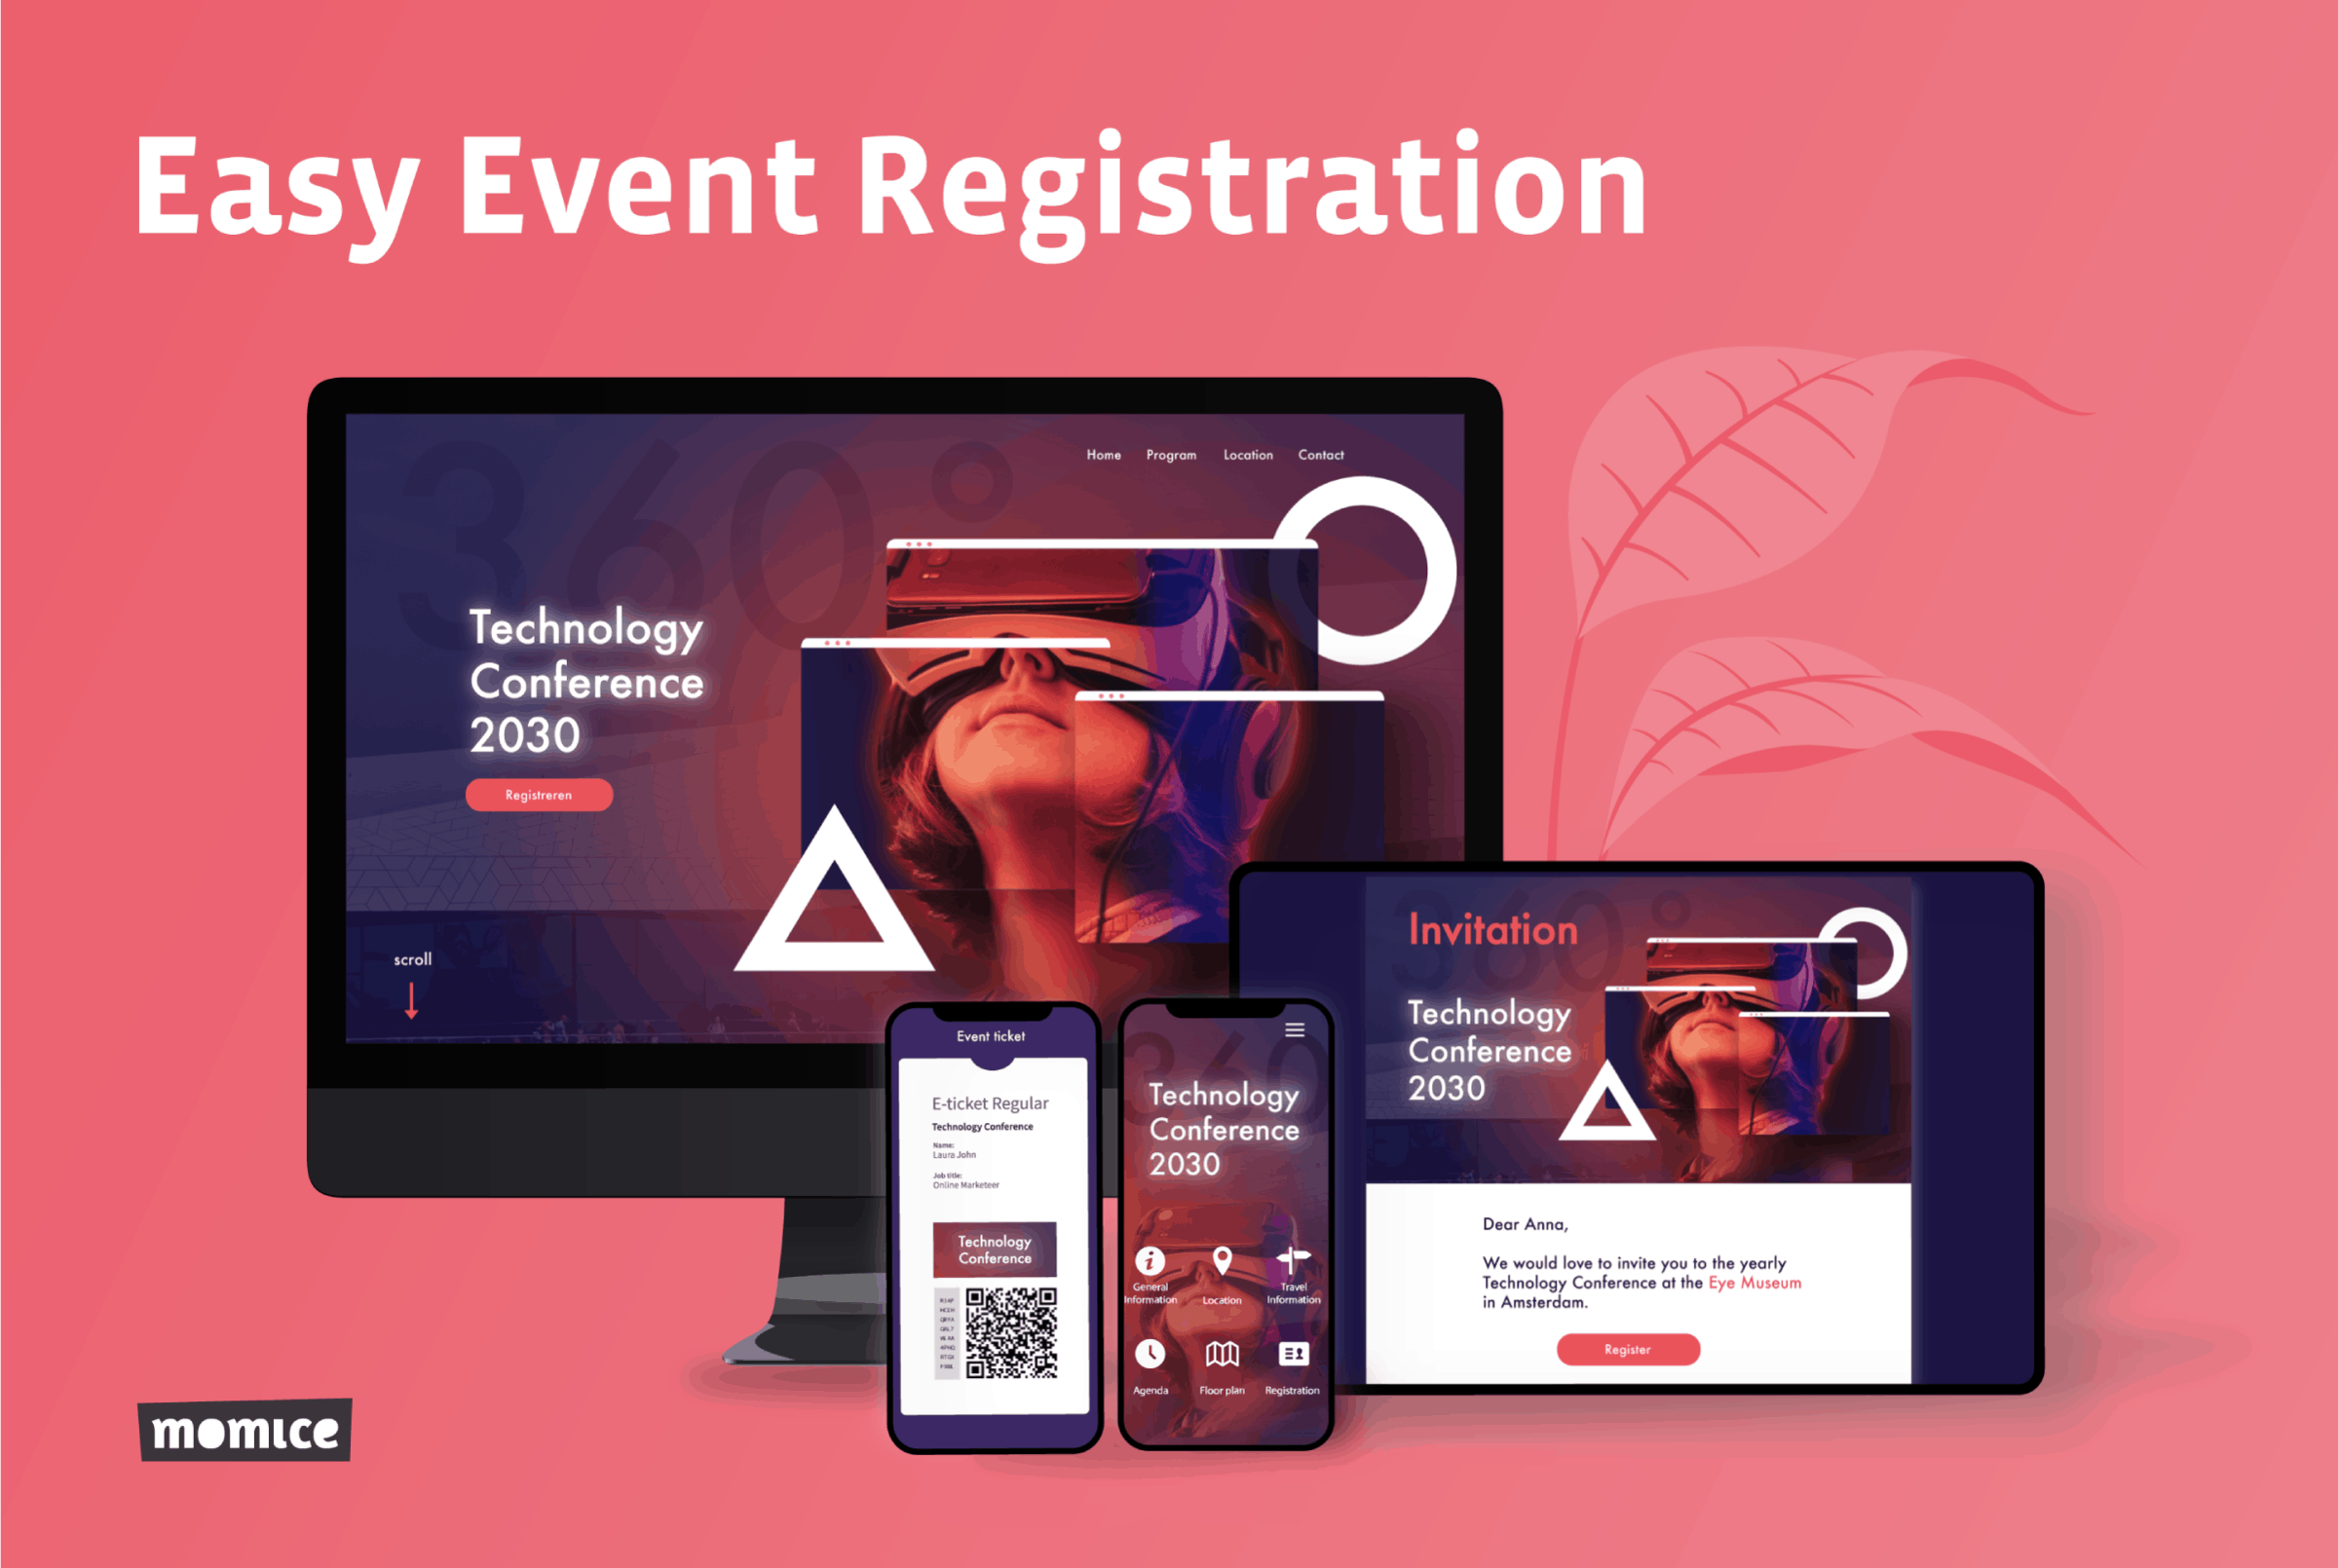 Momice - event registration - software - app - online events